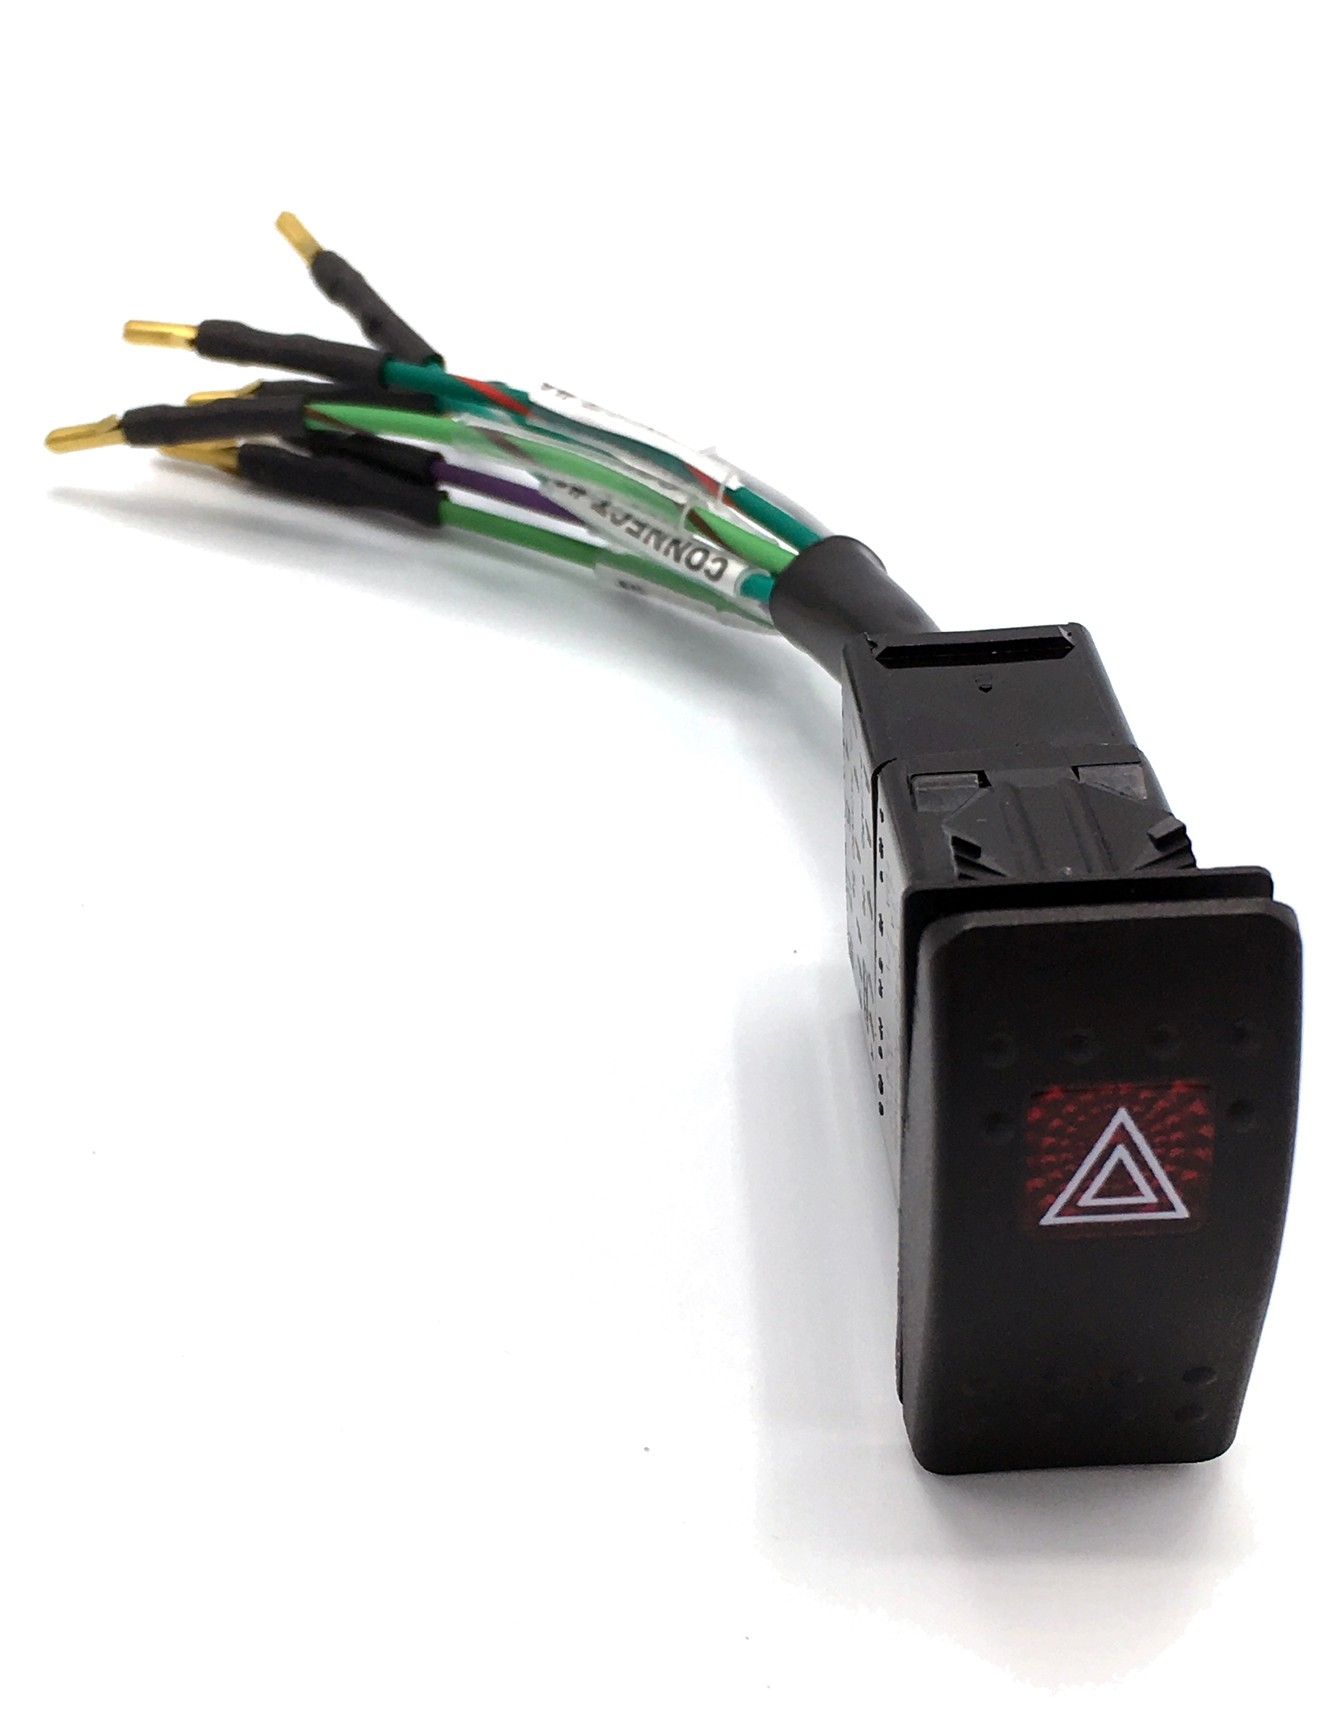 hight resolution of hazard switch wiring harness includes carling hazard switch multiplug